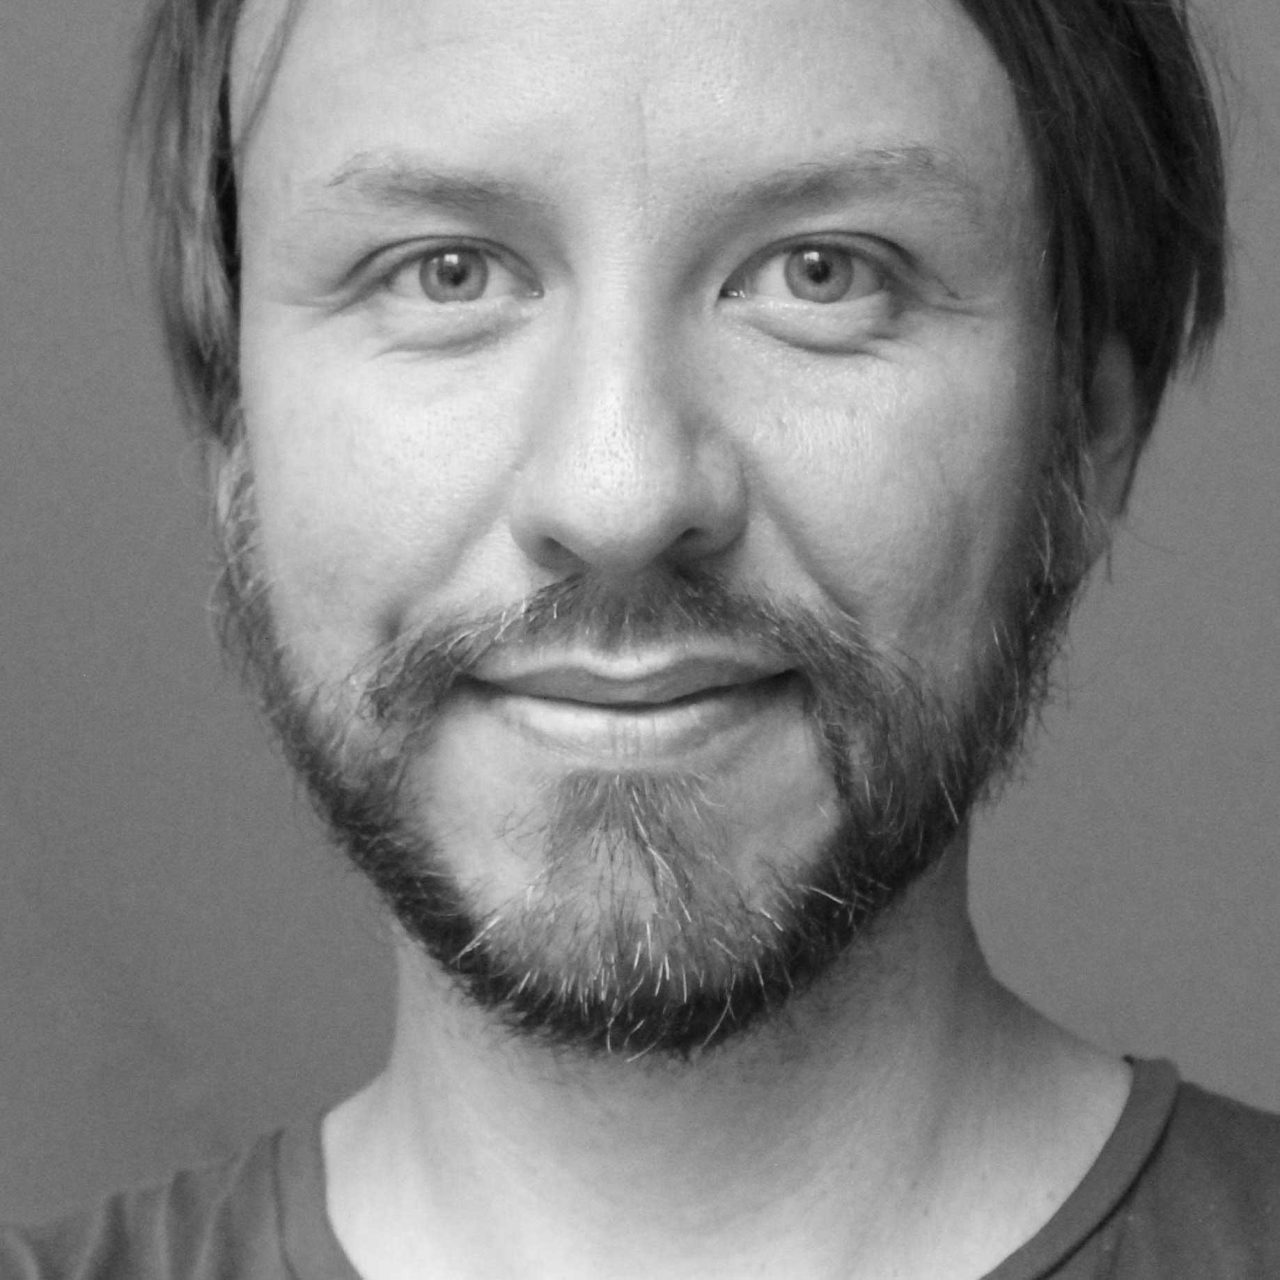 Animation Director, Henrik Malmgren